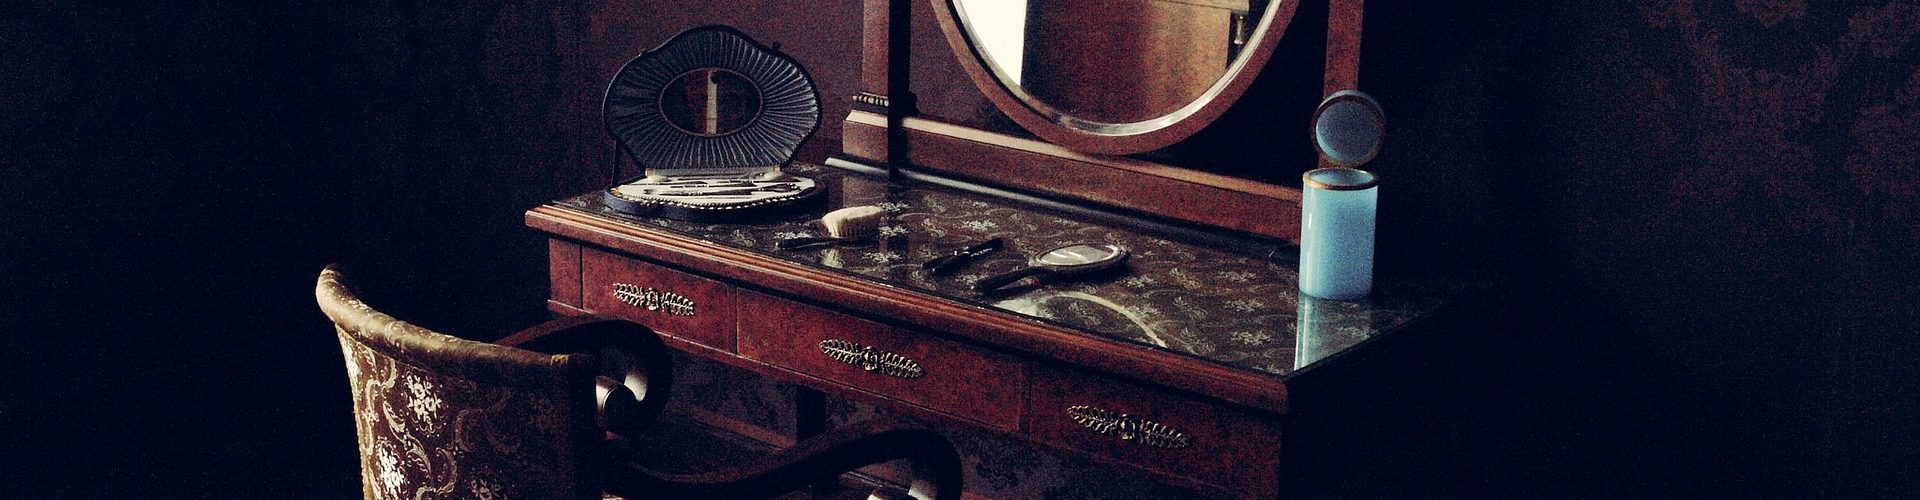 What's It Worth? Find the Value of Your Inherited Furniture